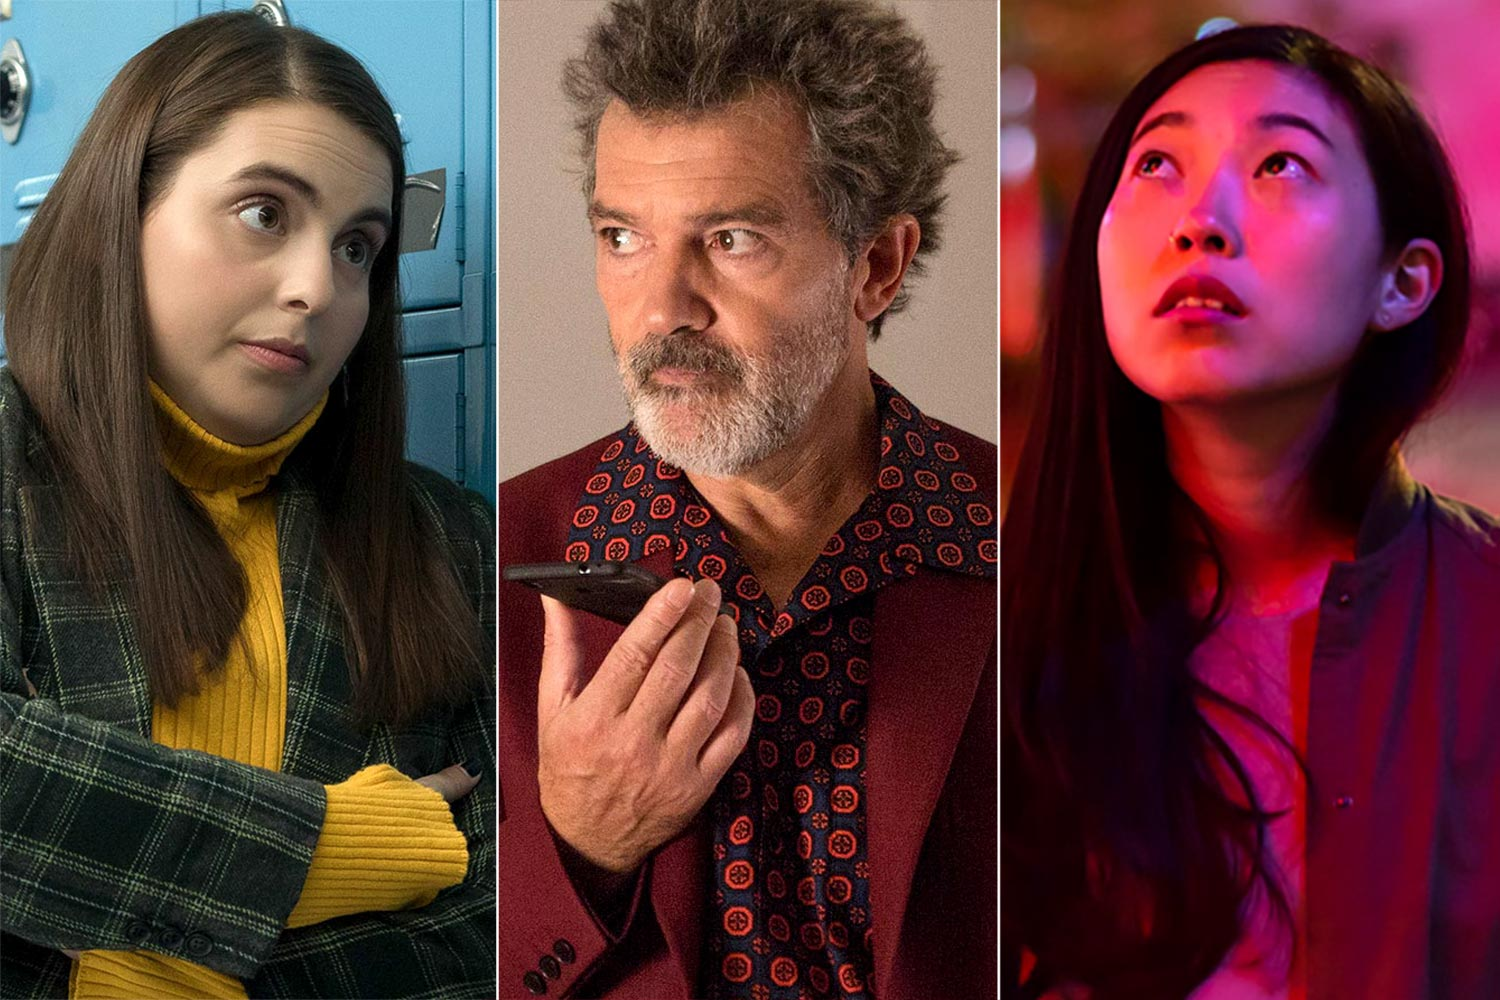 Beanie Feldstein in Booksmart, Antonio Banderas in Pain and Glory, Awkwafina in The Farewell